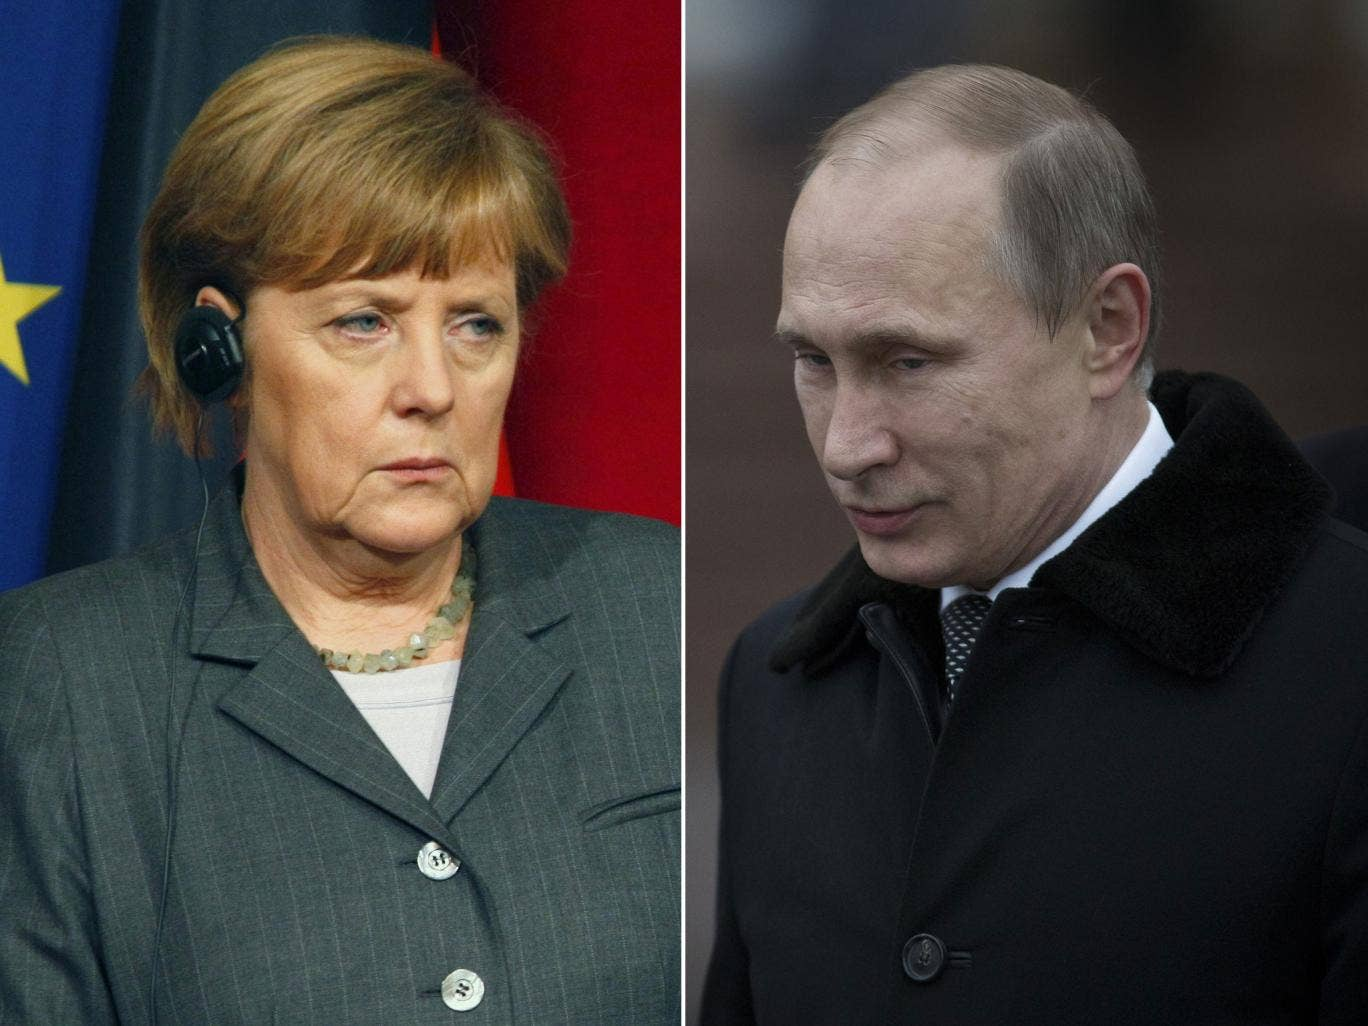 Angela Merkel's spokesperson says the German Chancellor and President Vladimir Putin agreed Ukraine's 'territorial integrity' must be maintained